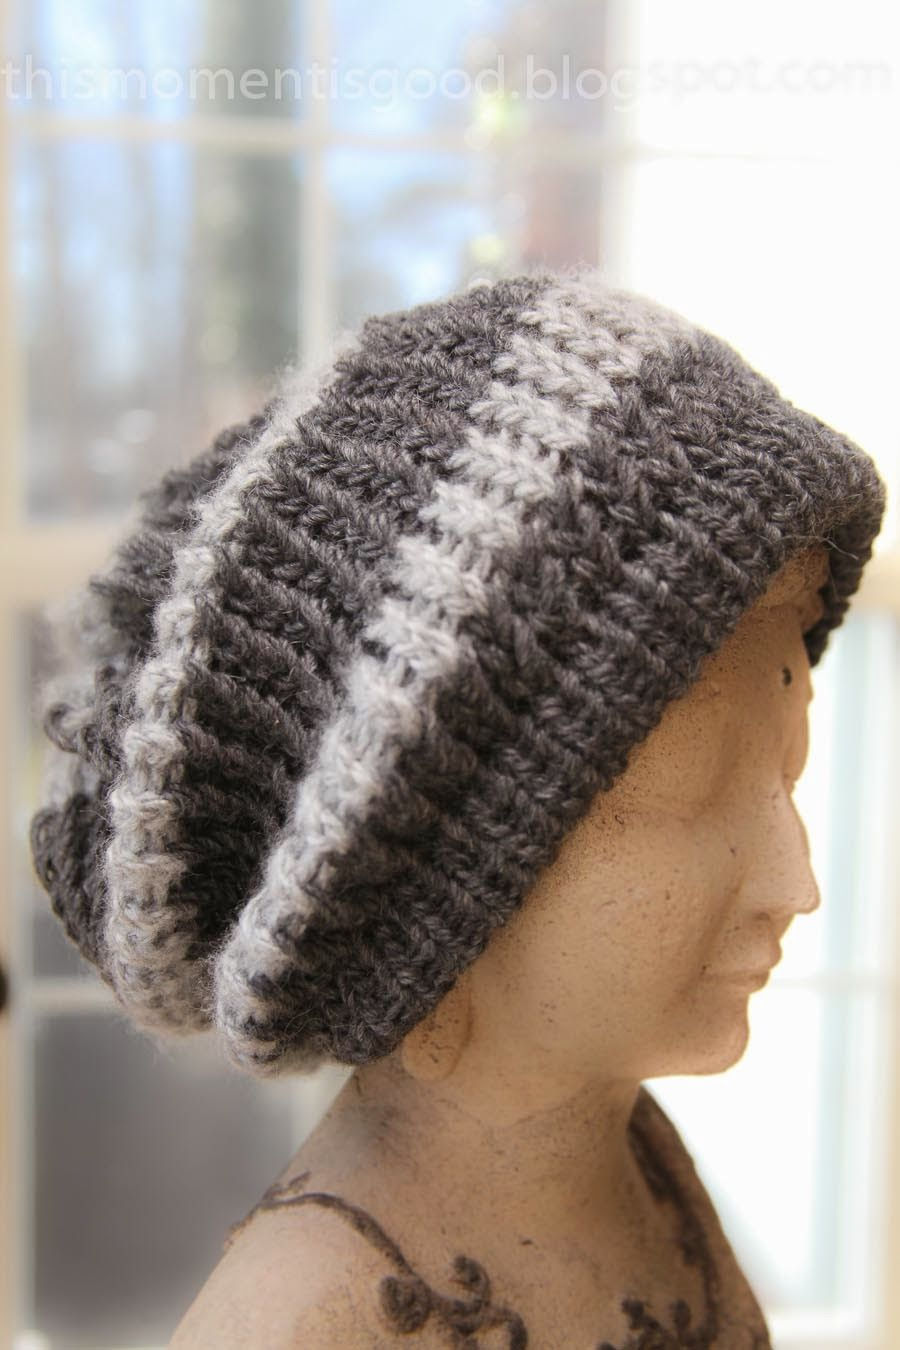 LOOM KNIT STRIPED SLOUCH HAT | Slouch hats, Loom knitting and Crochet